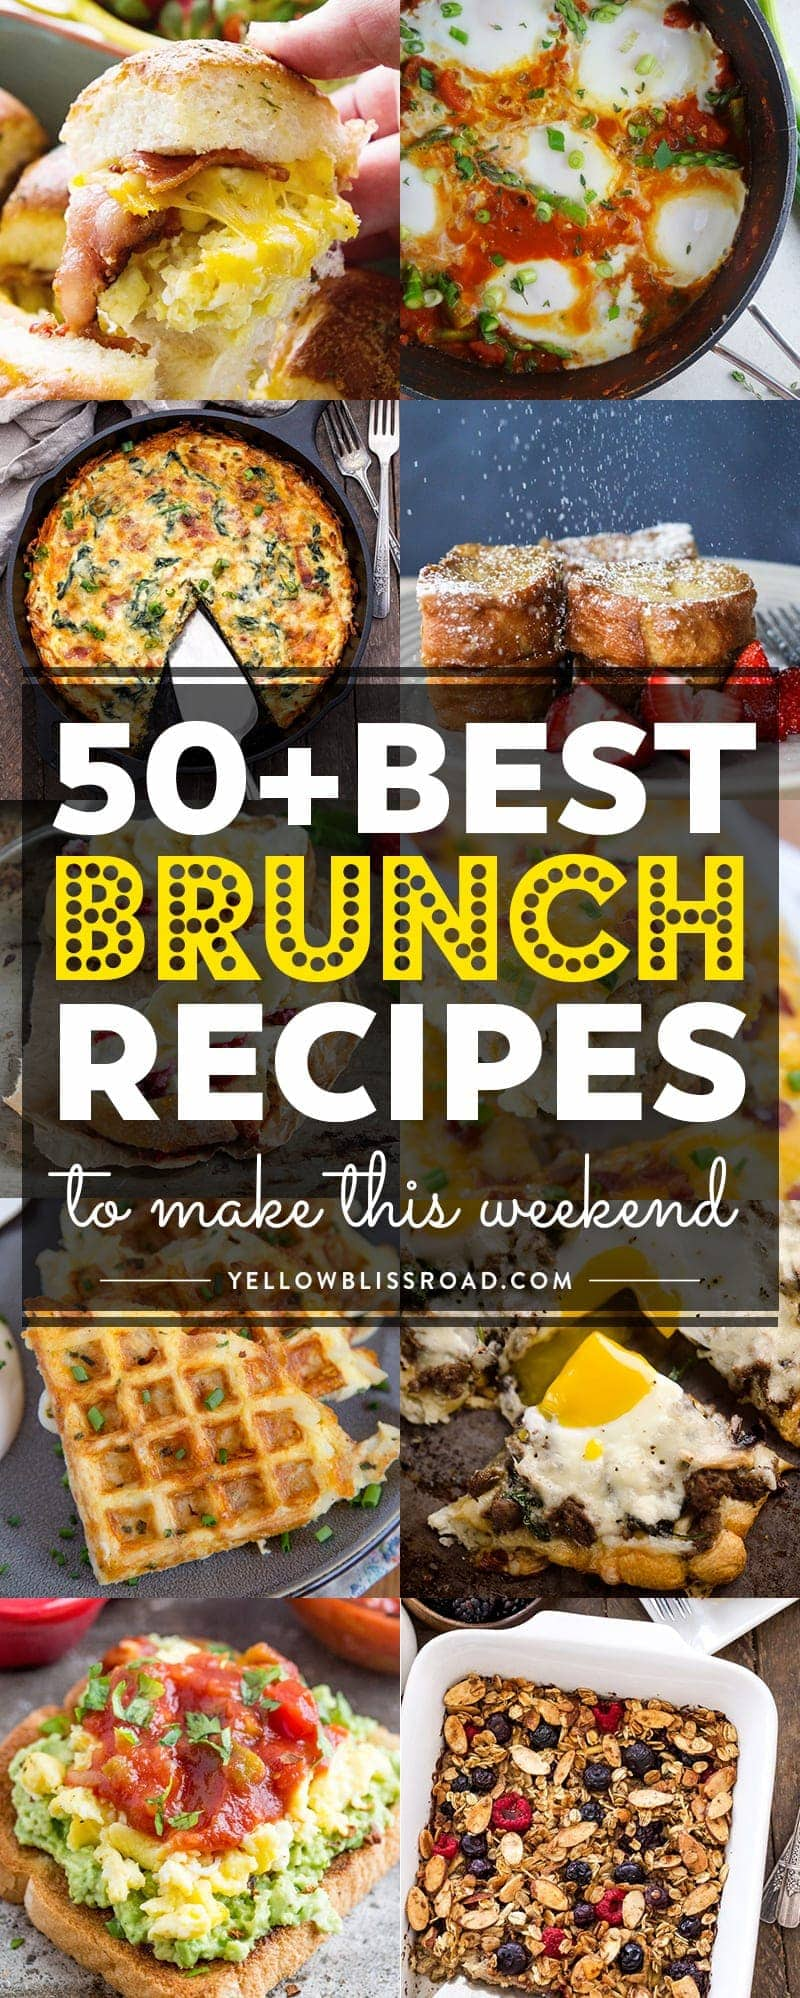 Stupendous 50 Of The Best Brunch Recipes To Make This Weekend Interior Design Ideas Gresisoteloinfo